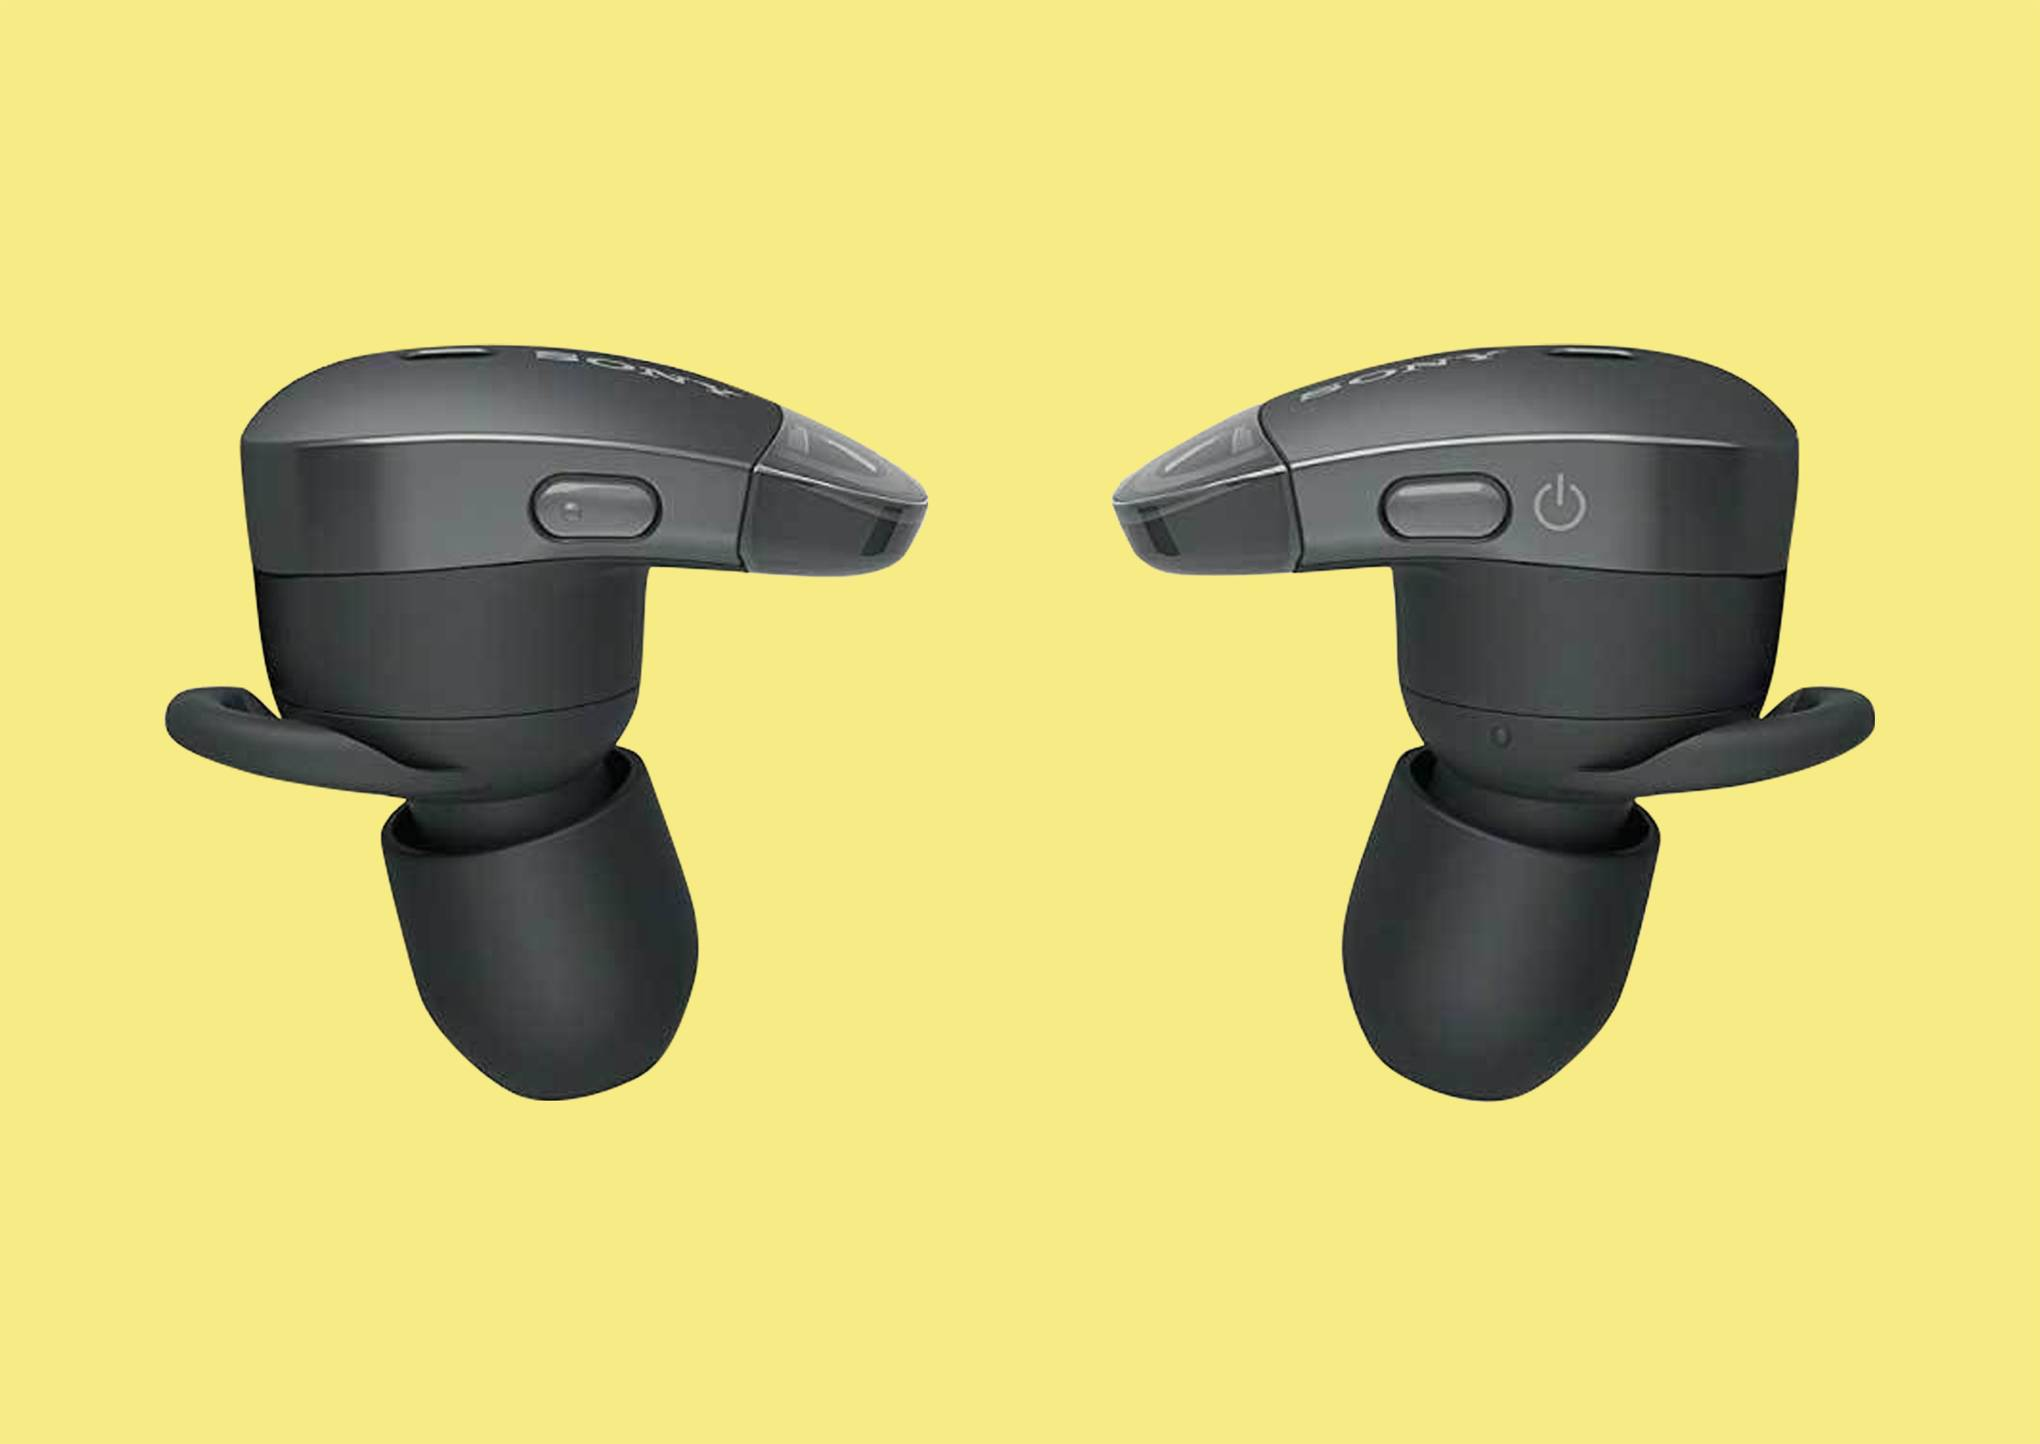 Best Wireless Earbuds 2019: The best Bluetooth earphones right now